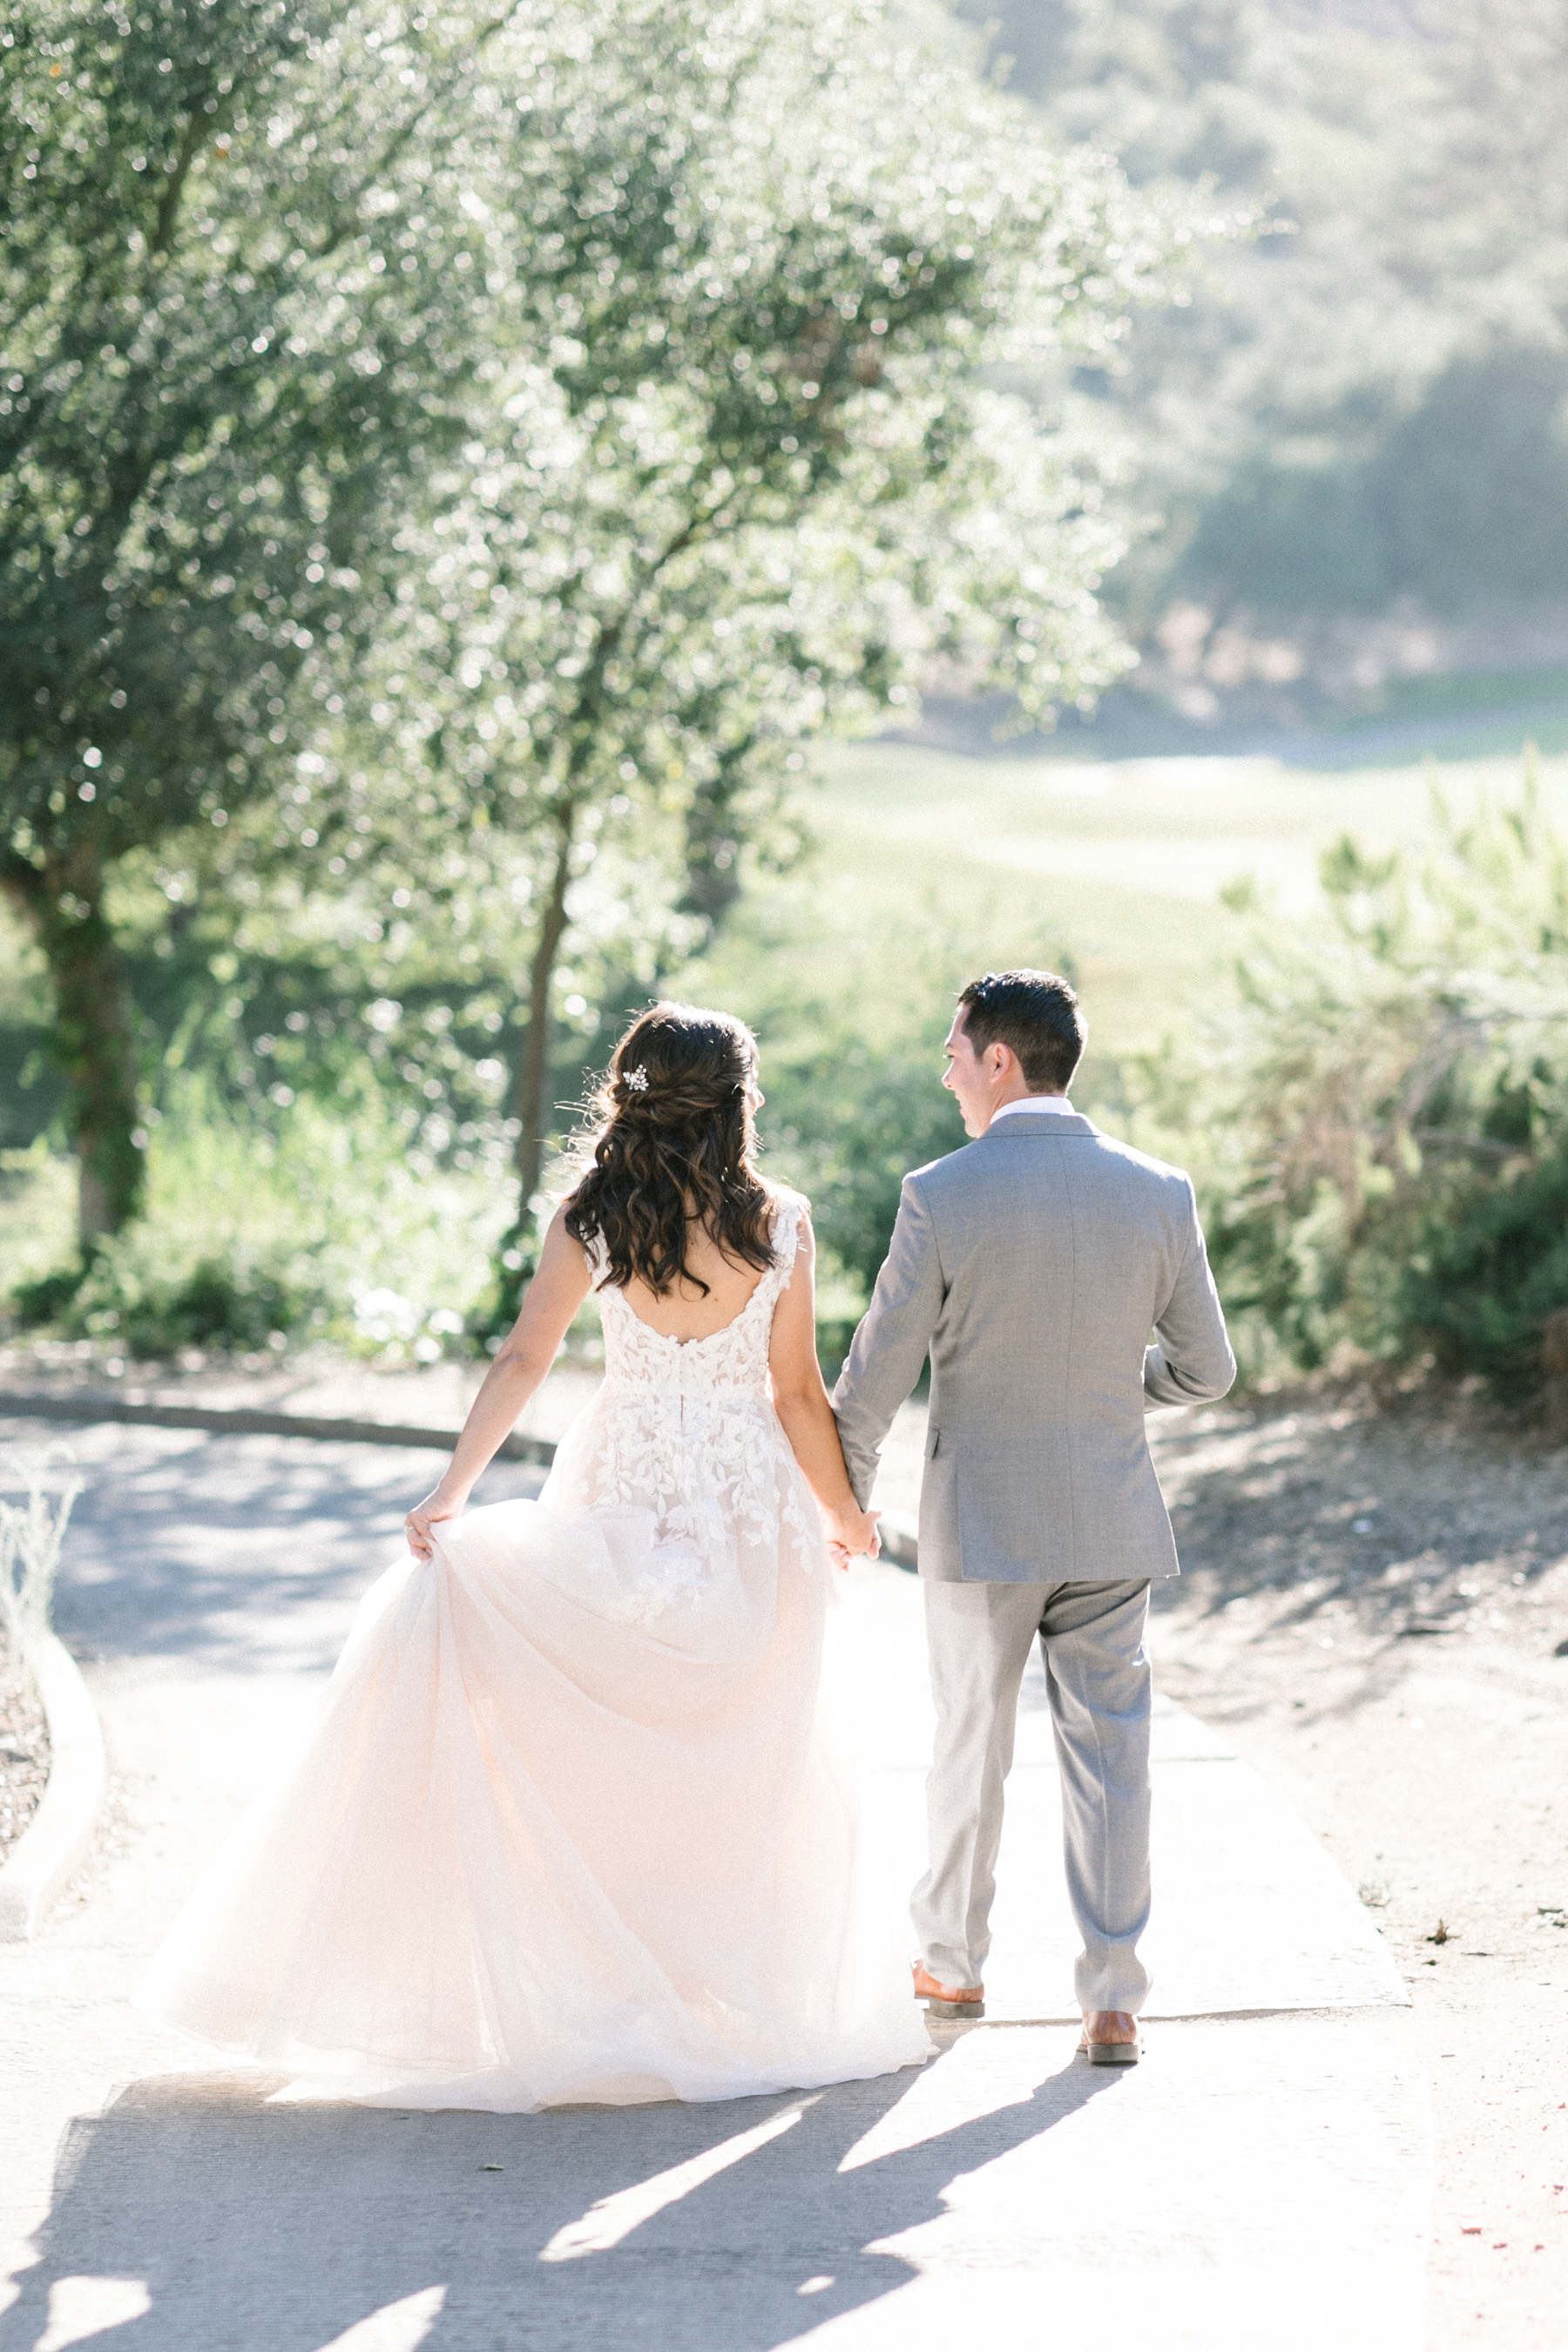 Jordan and Alex's Mt. Woodson Ramona Wedding Great Woodland Photography 8-31-19-27.jpg